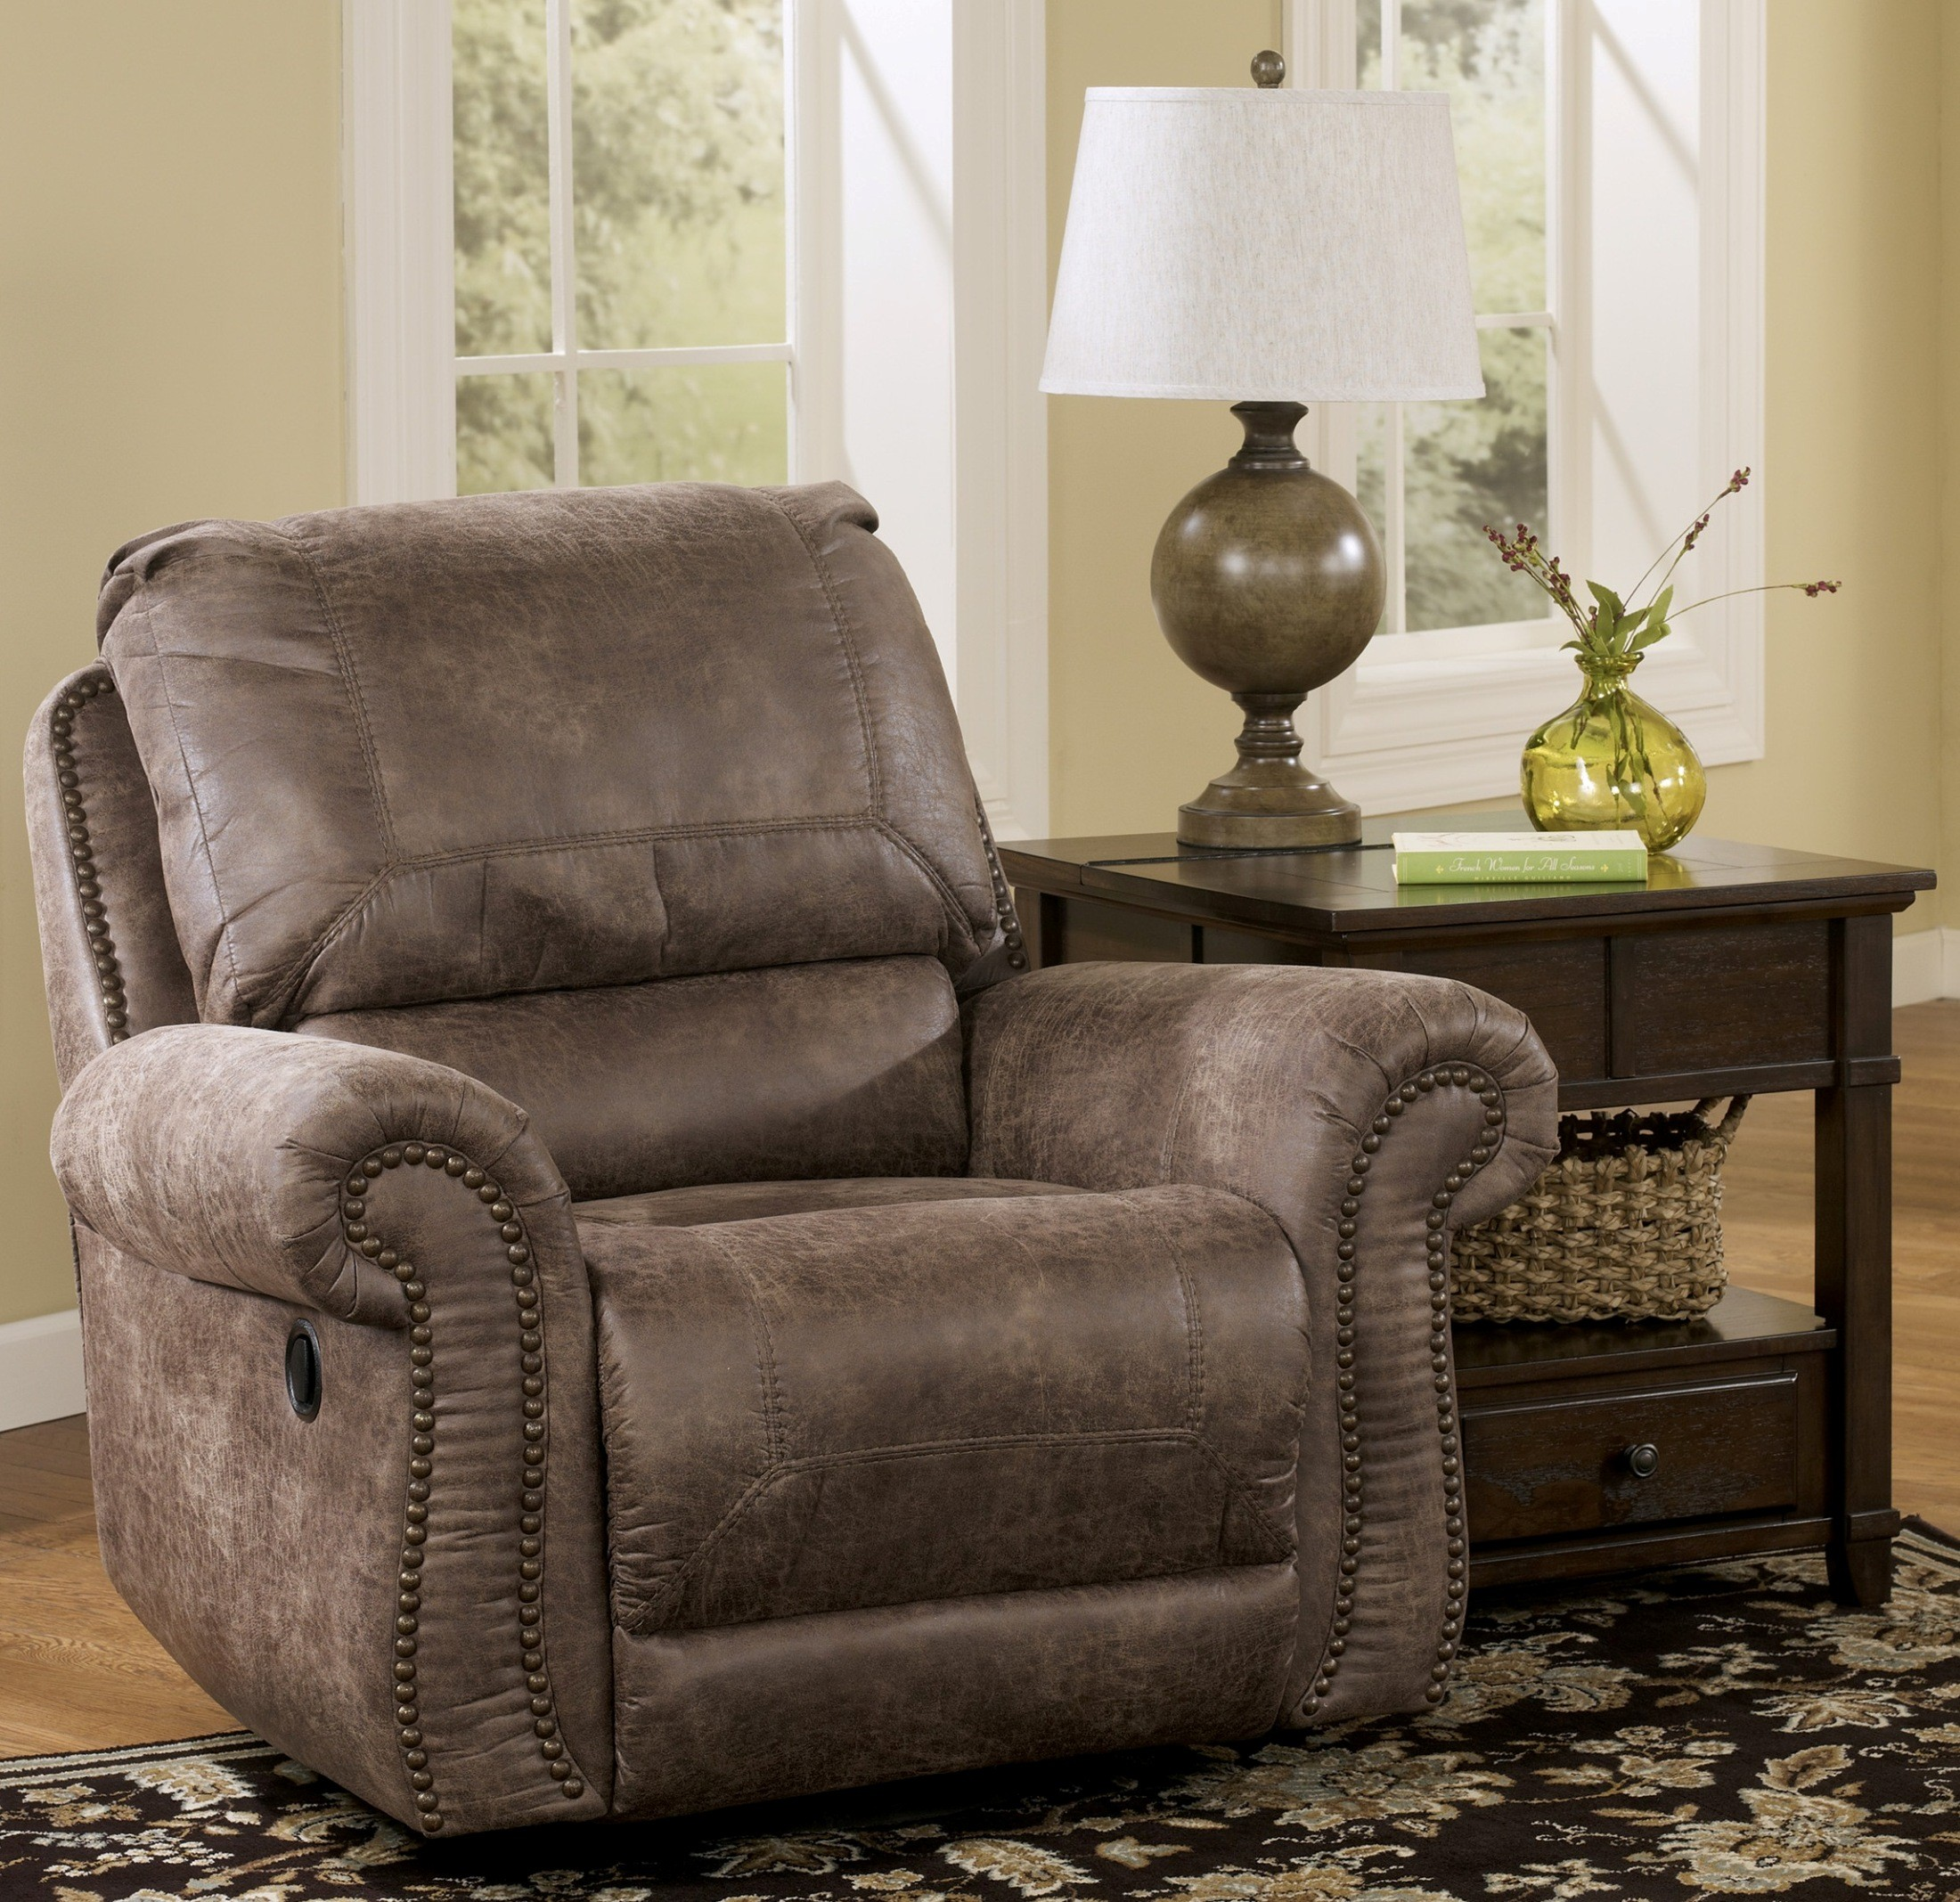 Oberson Gunsmoke Swivel Glider Recliner From Ashley